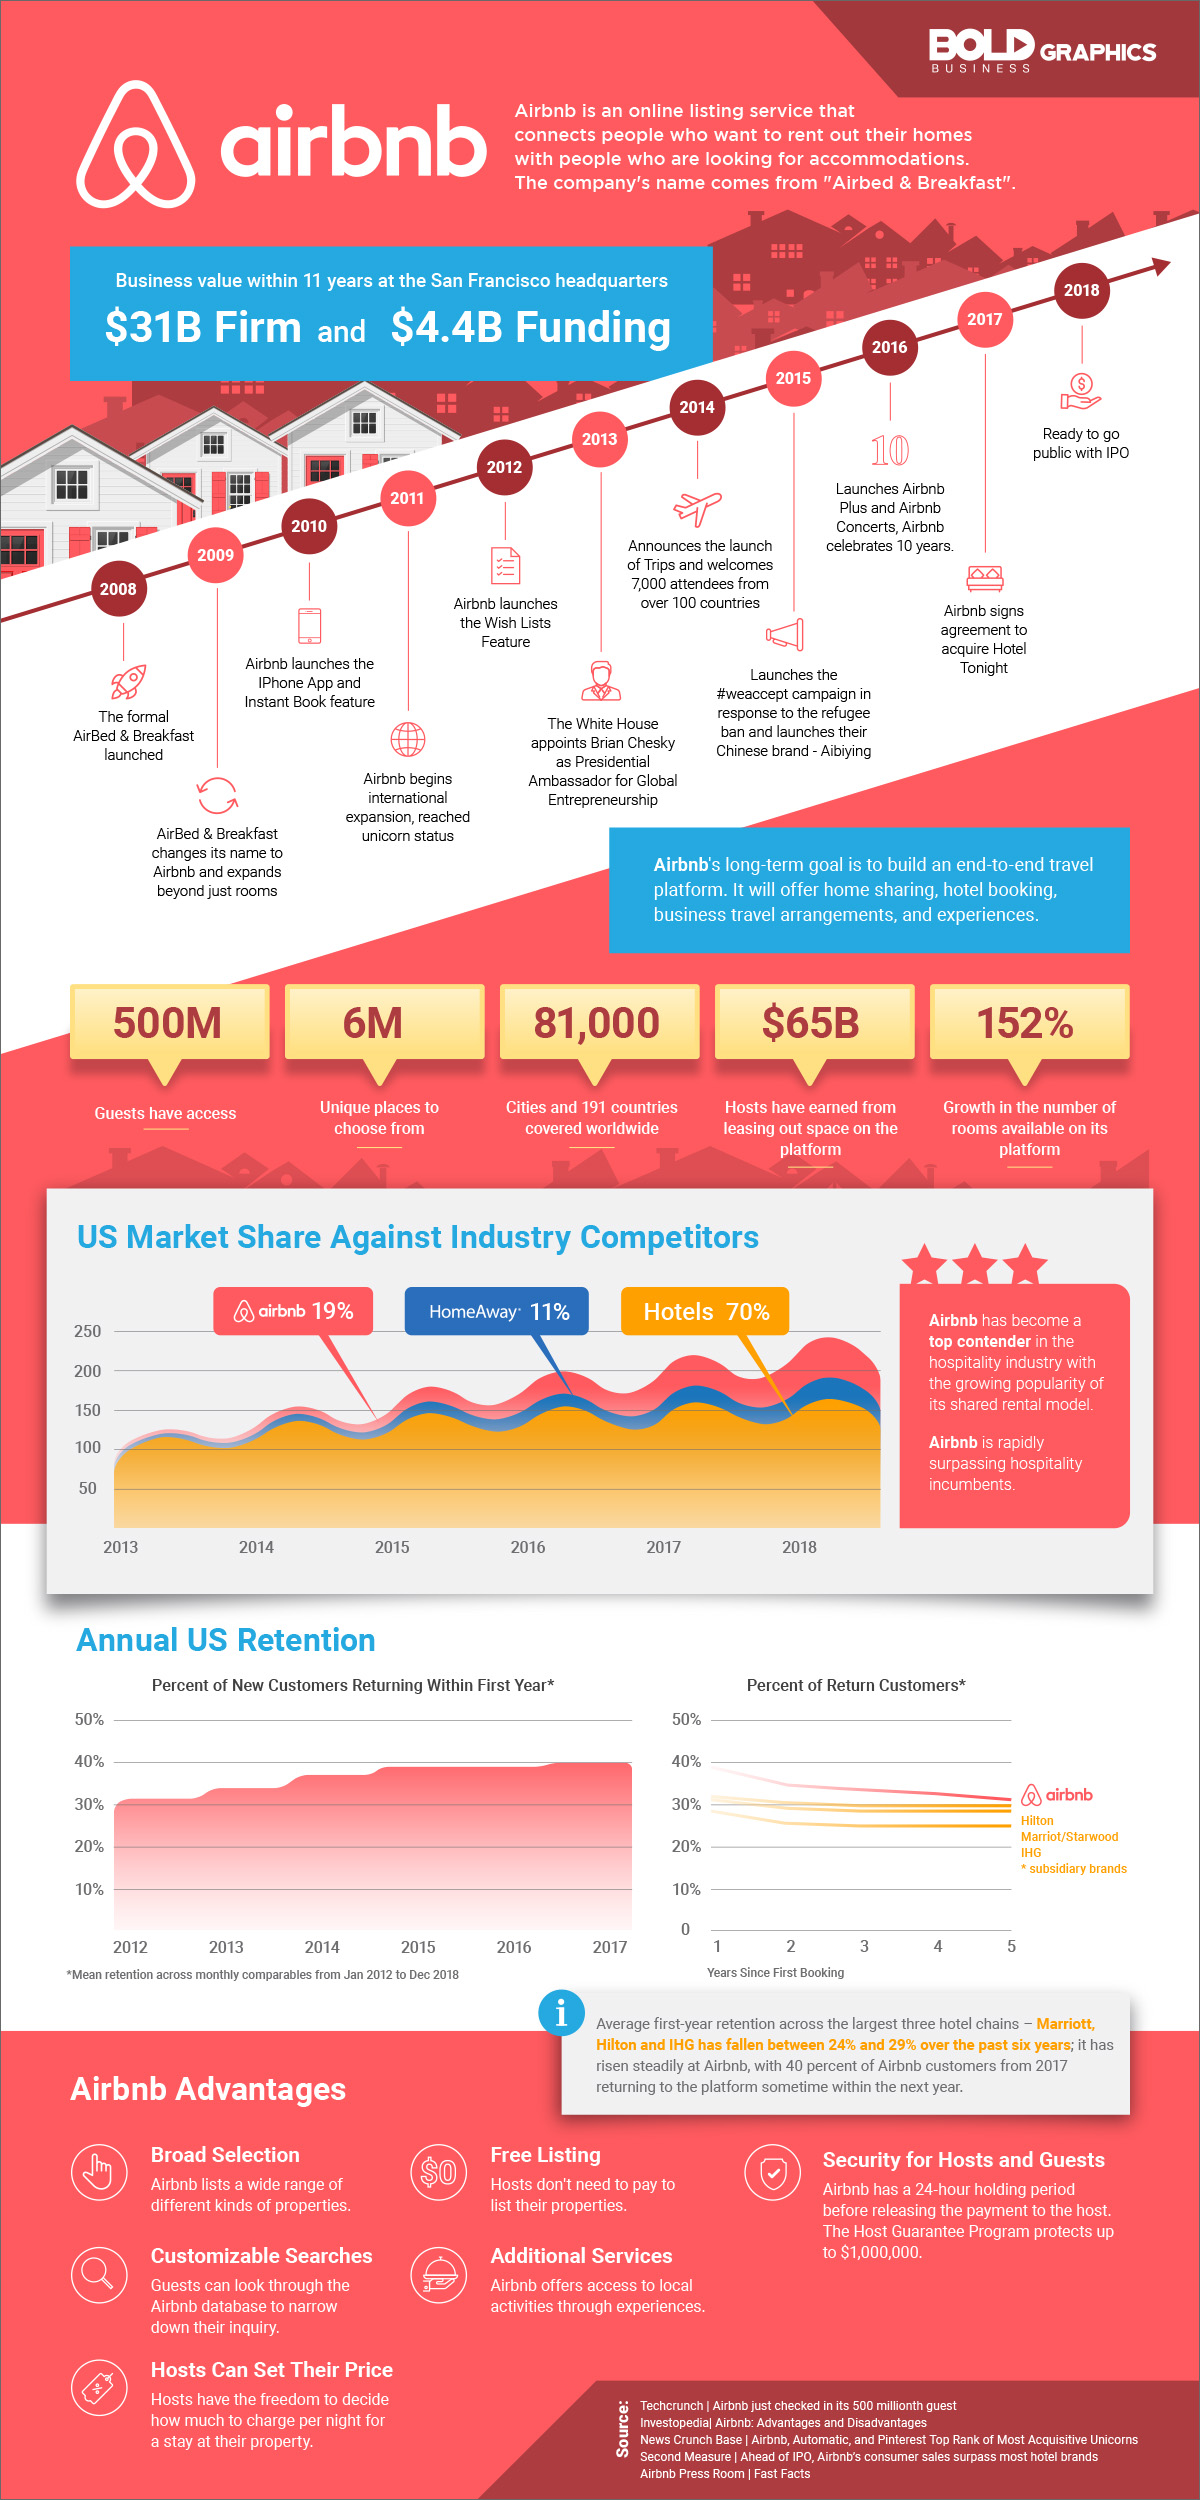 infographic image about Airbnb